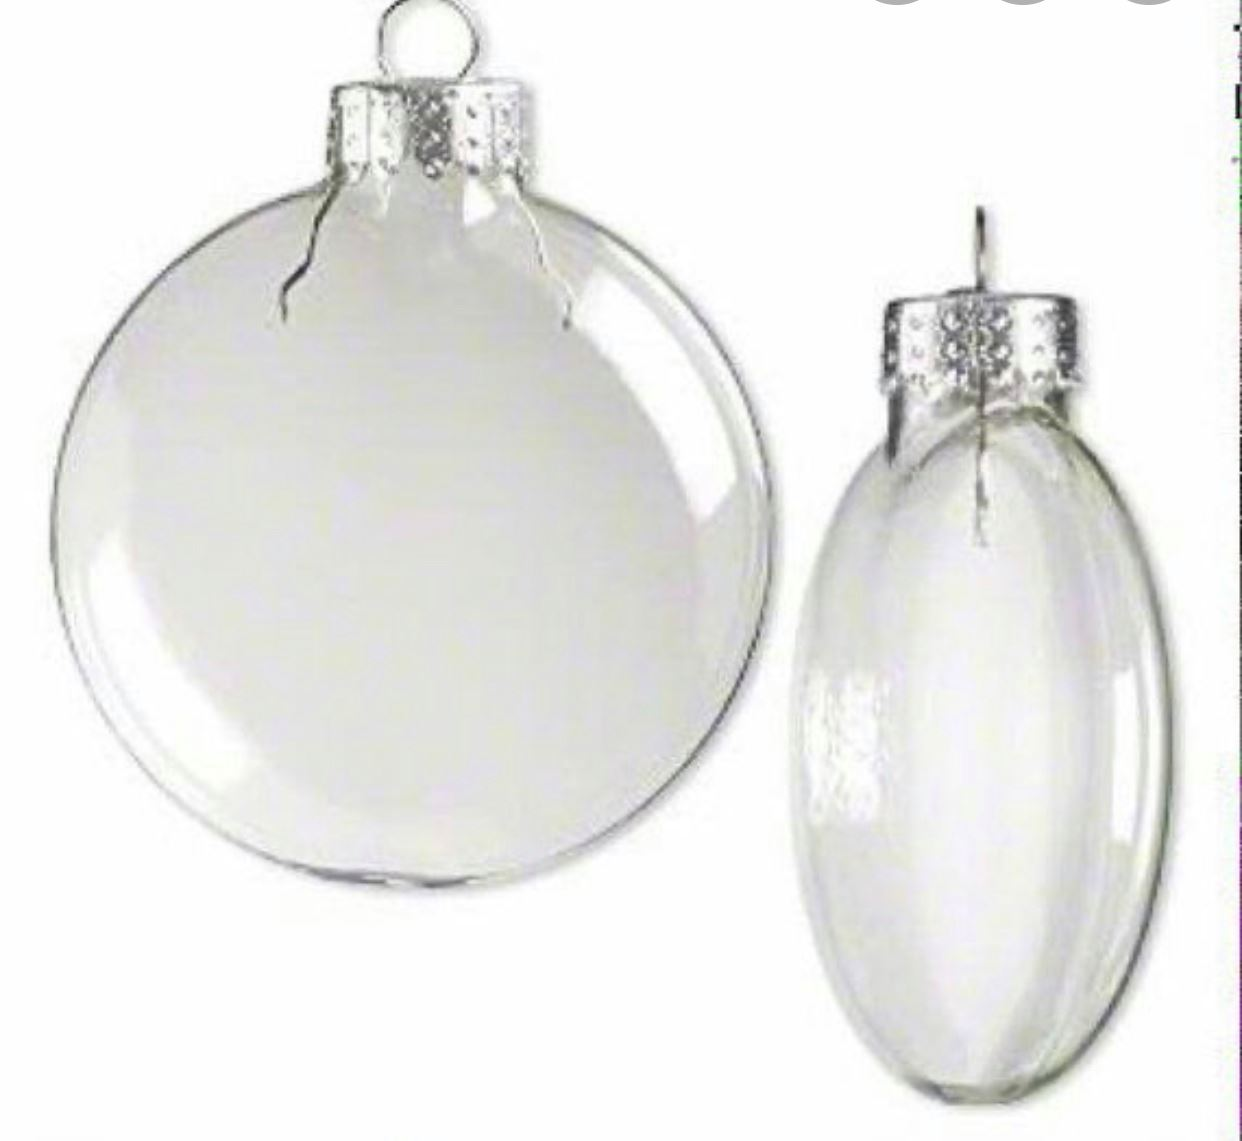 80mm Shatterproof Clear Disc Ornaments